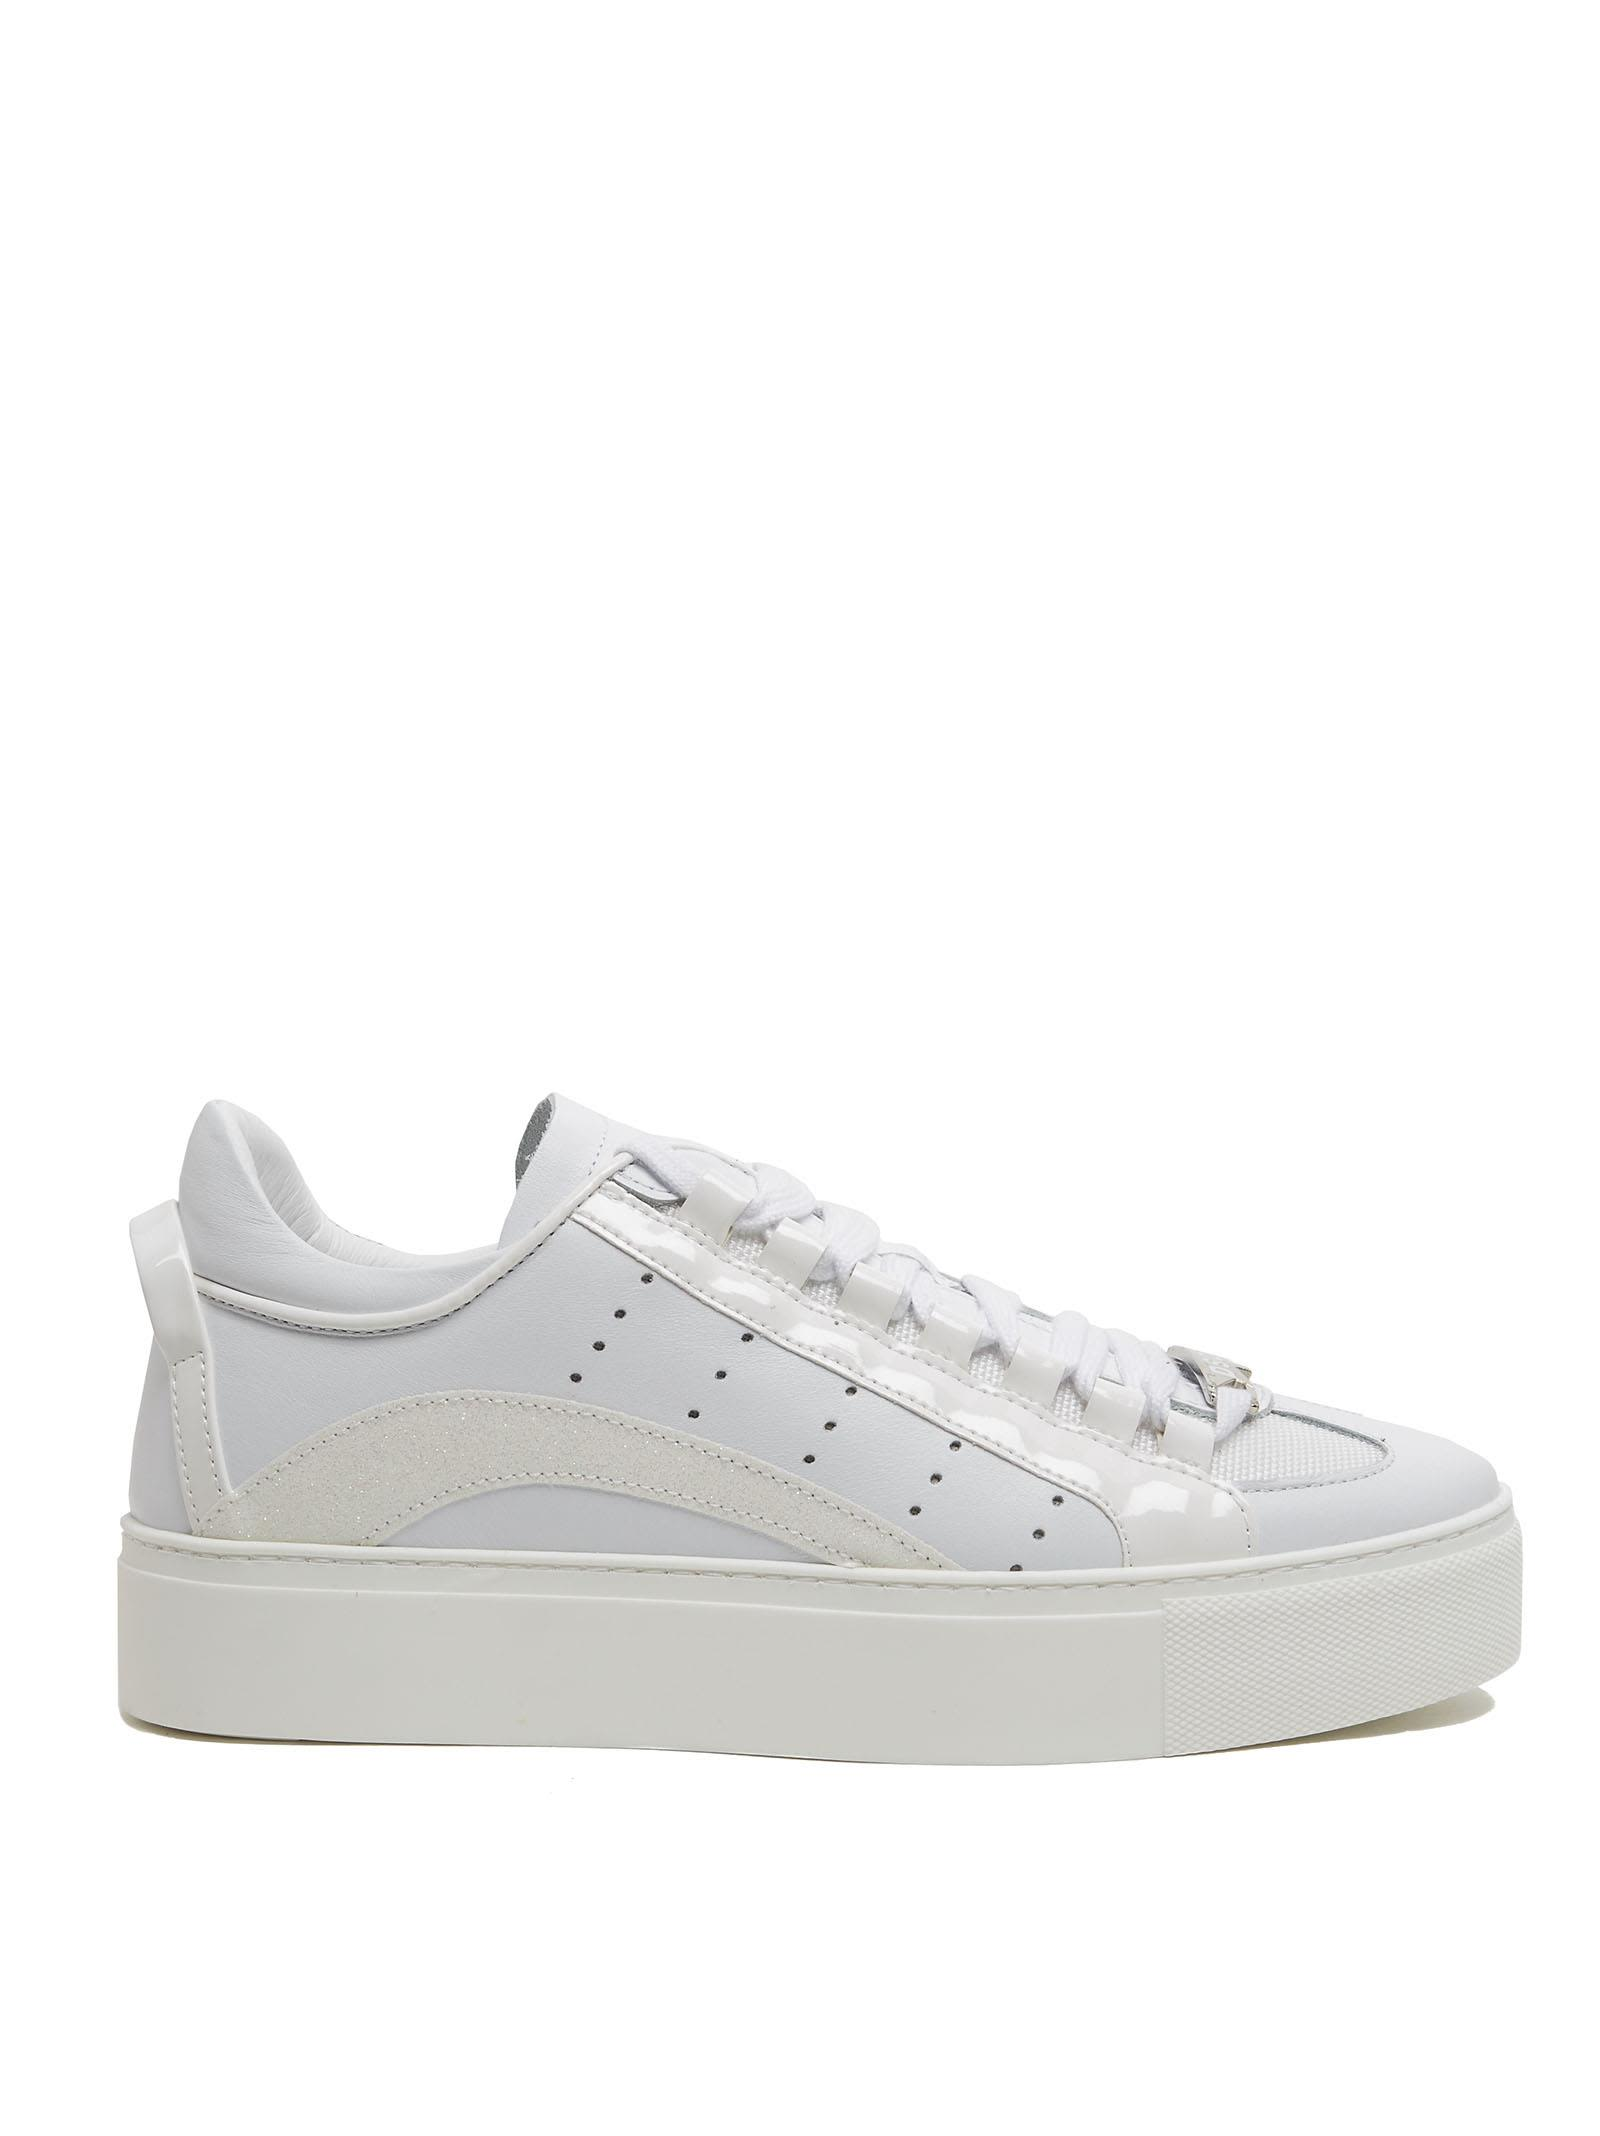 551 maxi sole sneakers Dsquared2 1otM8iRTX4